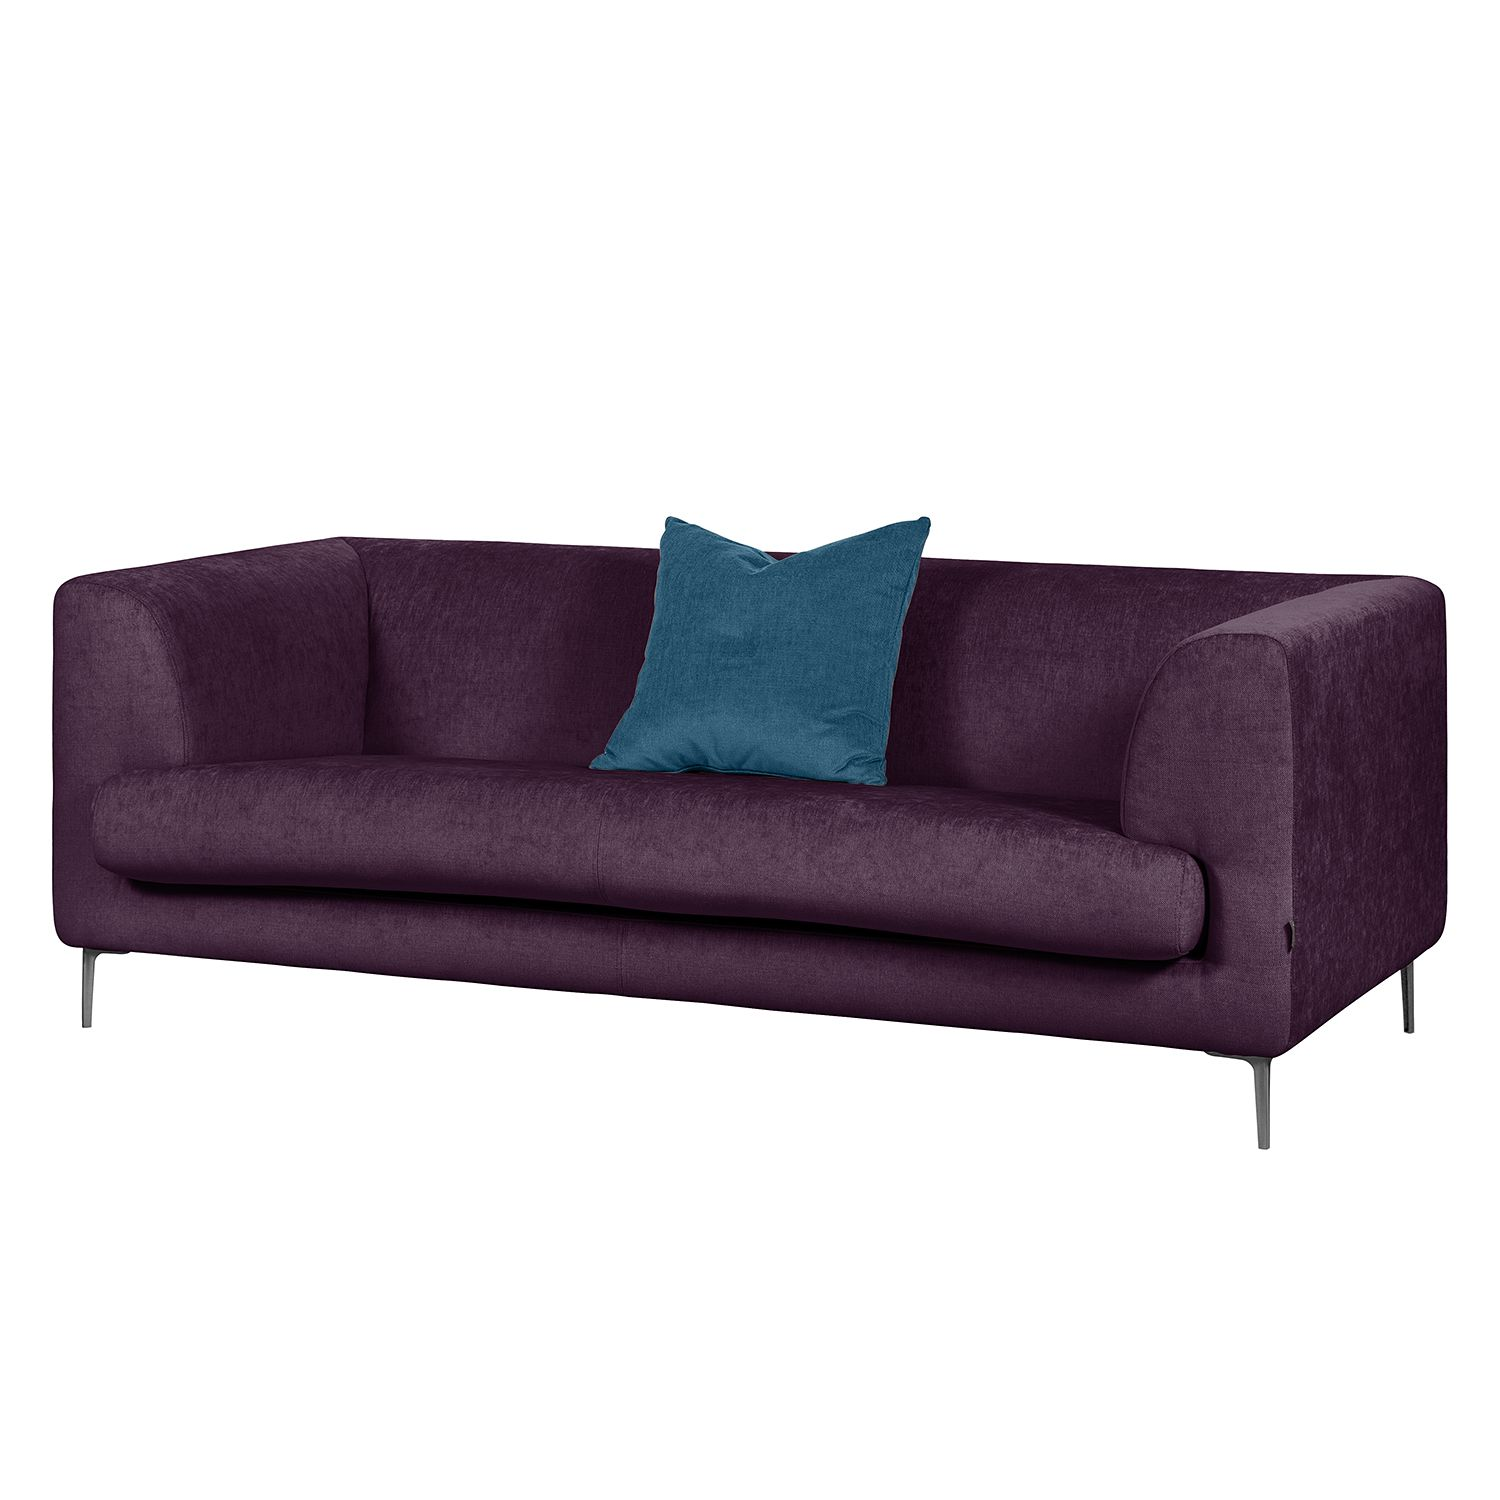 sofa sombret 2 5 sitzer webstoff aubergine g nstig. Black Bedroom Furniture Sets. Home Design Ideas